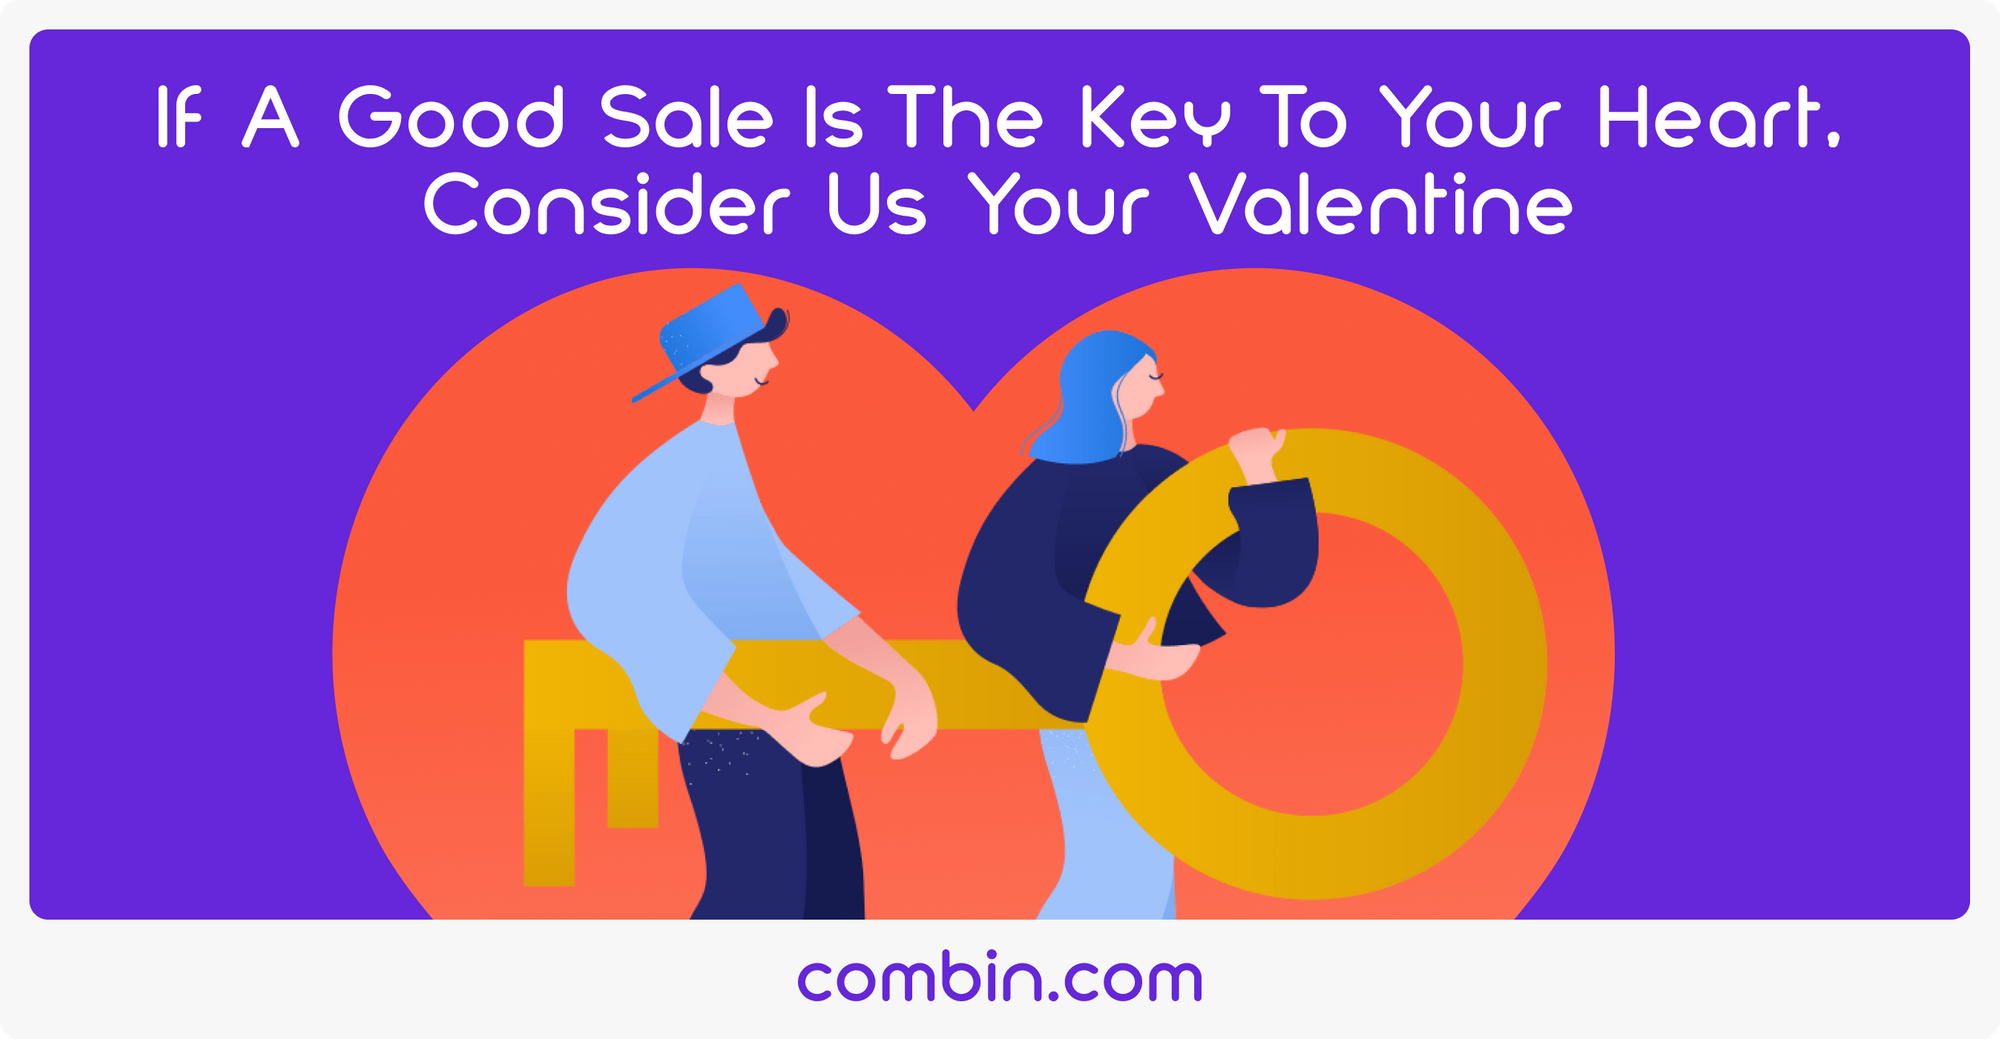 Get 50% Off Combin Growth Licenses For St. Valentine's Day